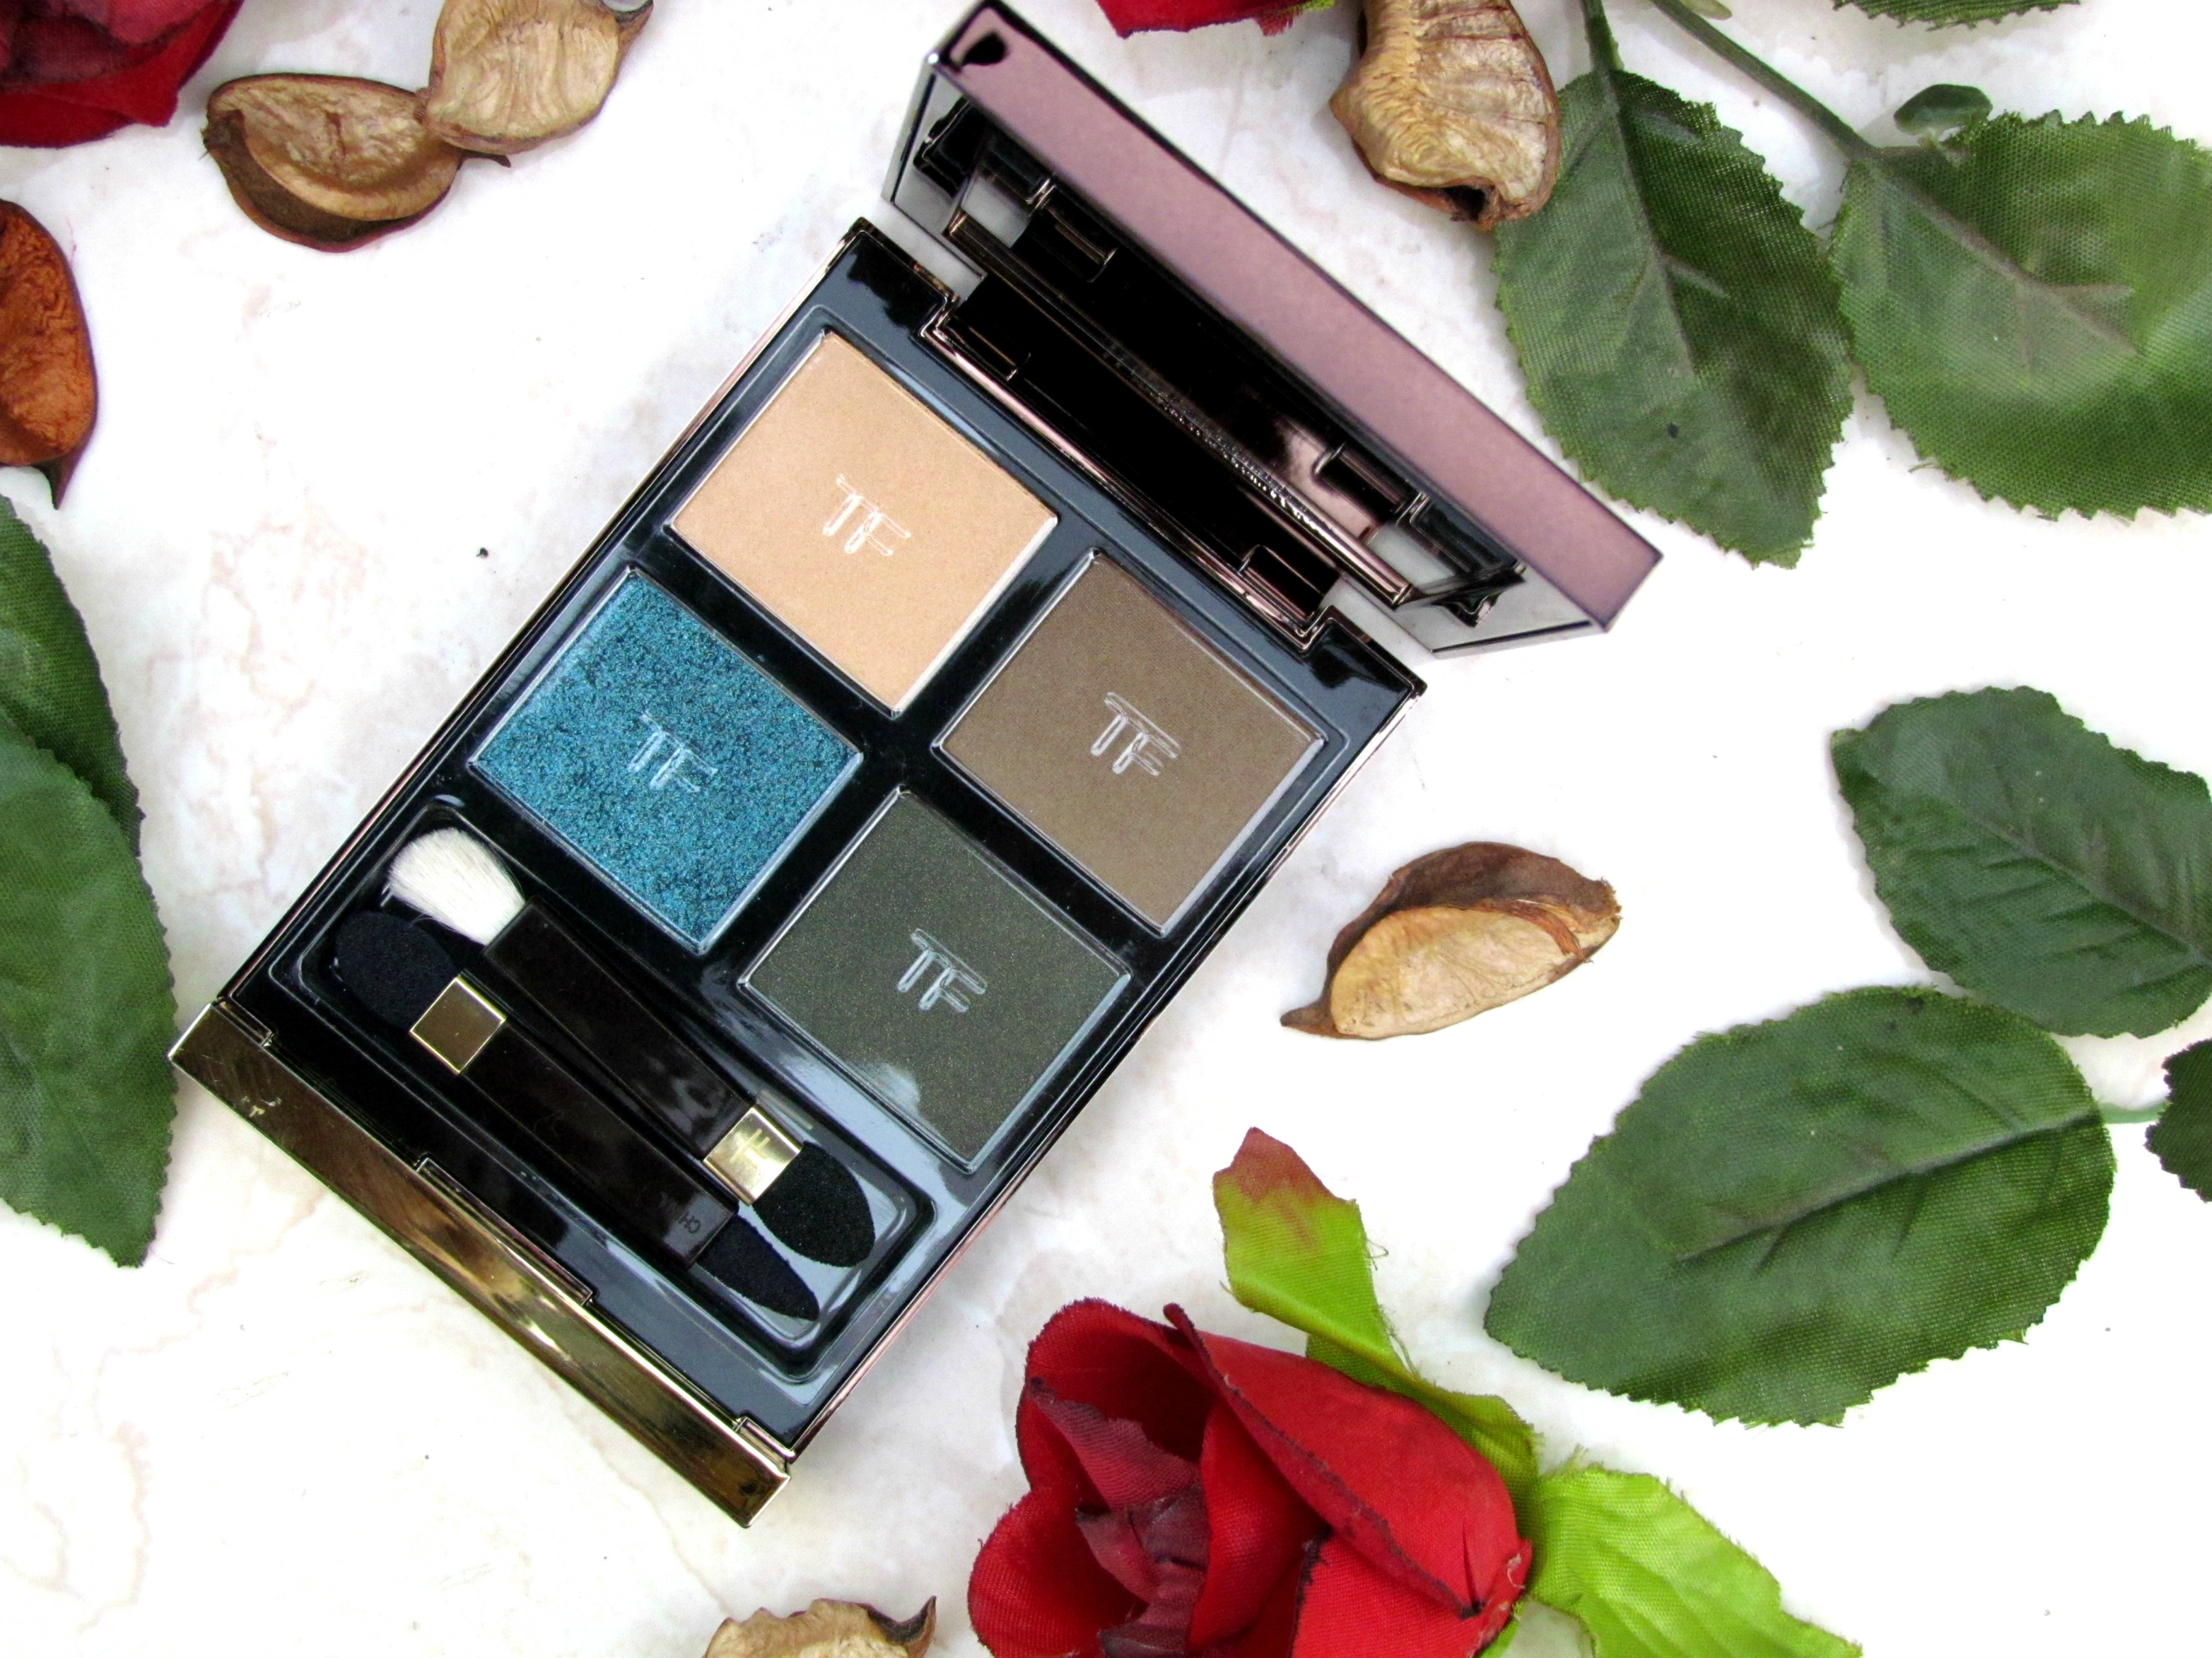 Tom Ford Last Dance Eyeshadow Quad Review, Photos, Swatches